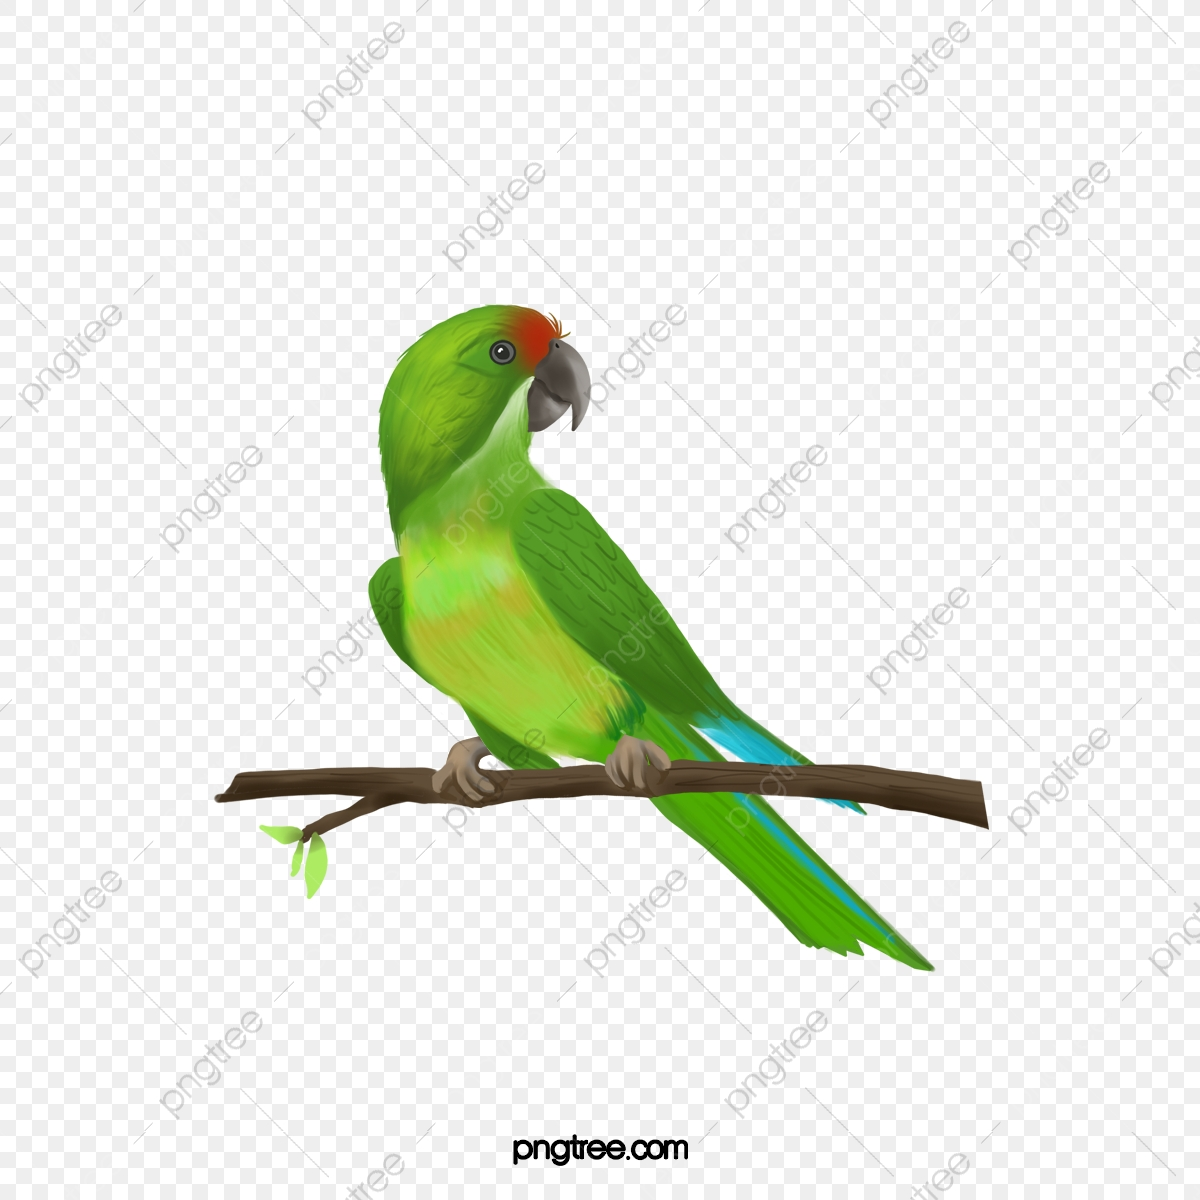 Parrot clipart green parrot. Pictures birds